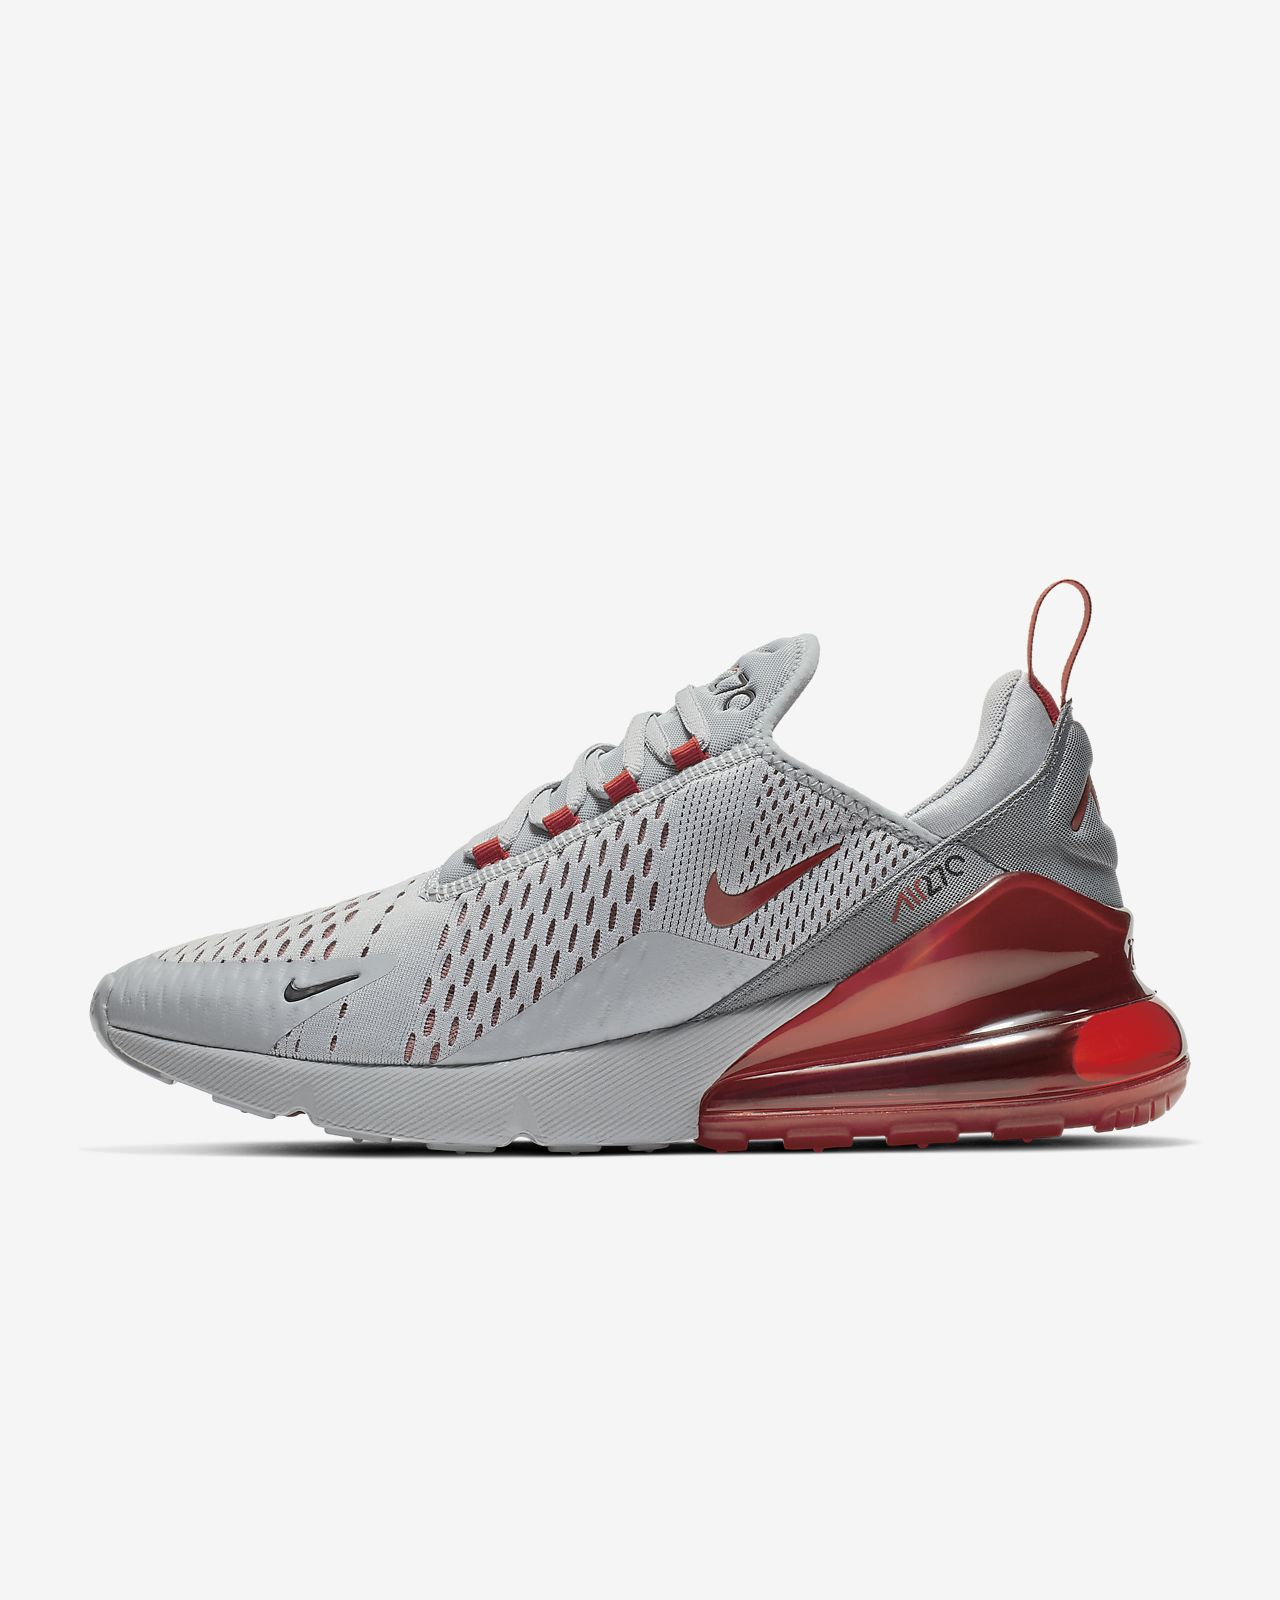 meet 791b0 8b0e3 Men s Shoe. Nike Air Max 270